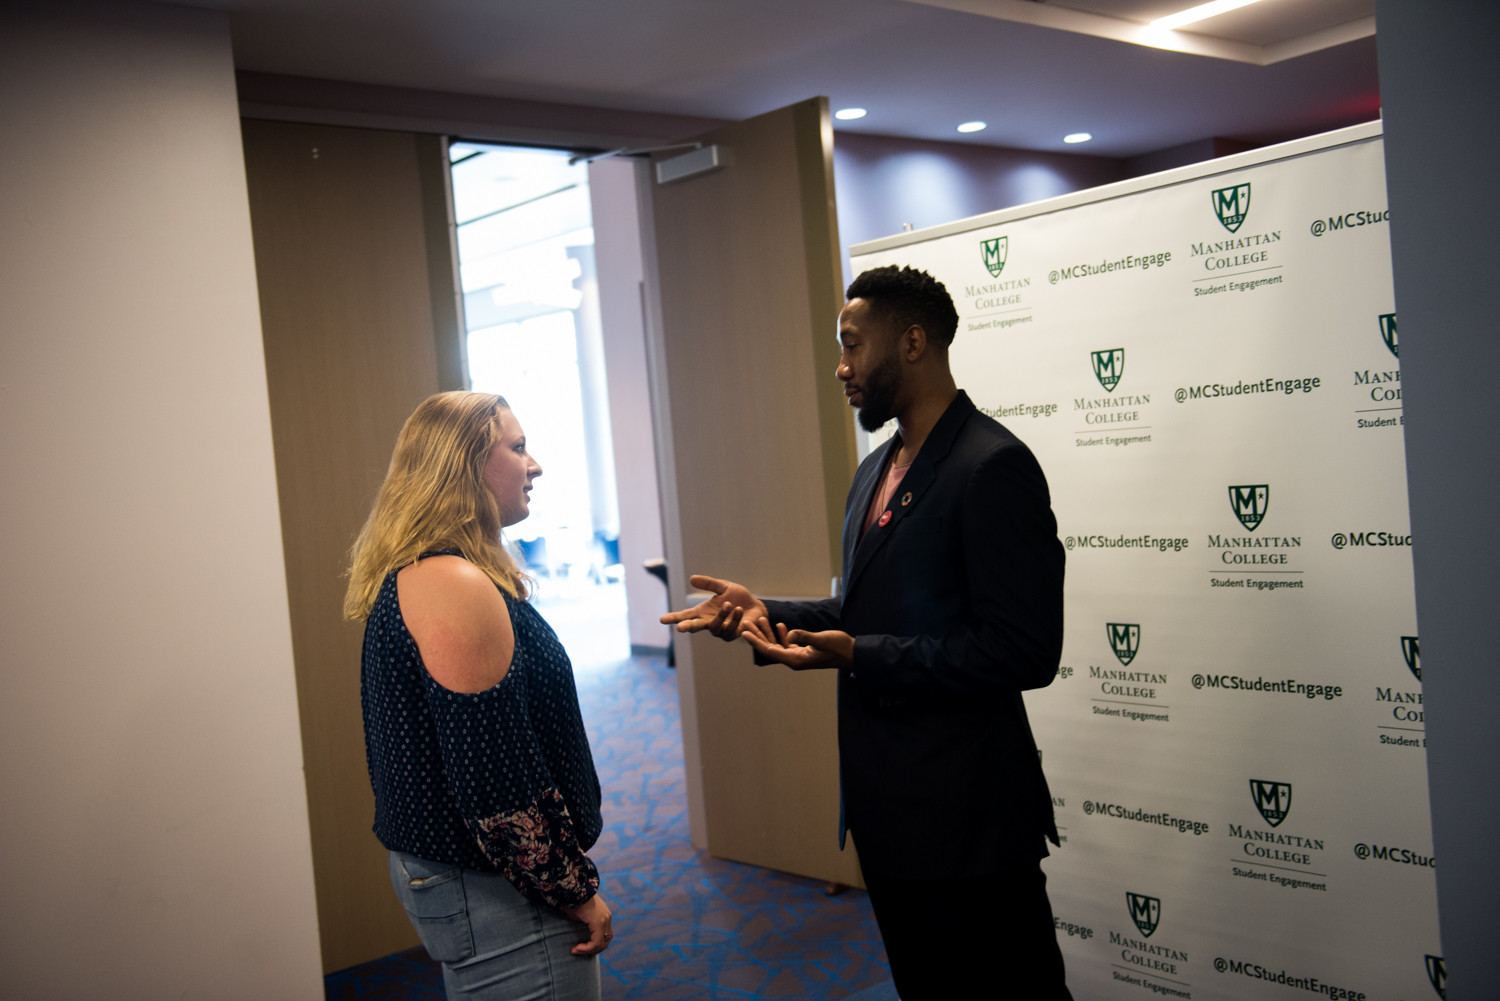 Ndaba Mandela, the grandson of Nelson Mandela, talks with a student following his talk at Manhattan College.